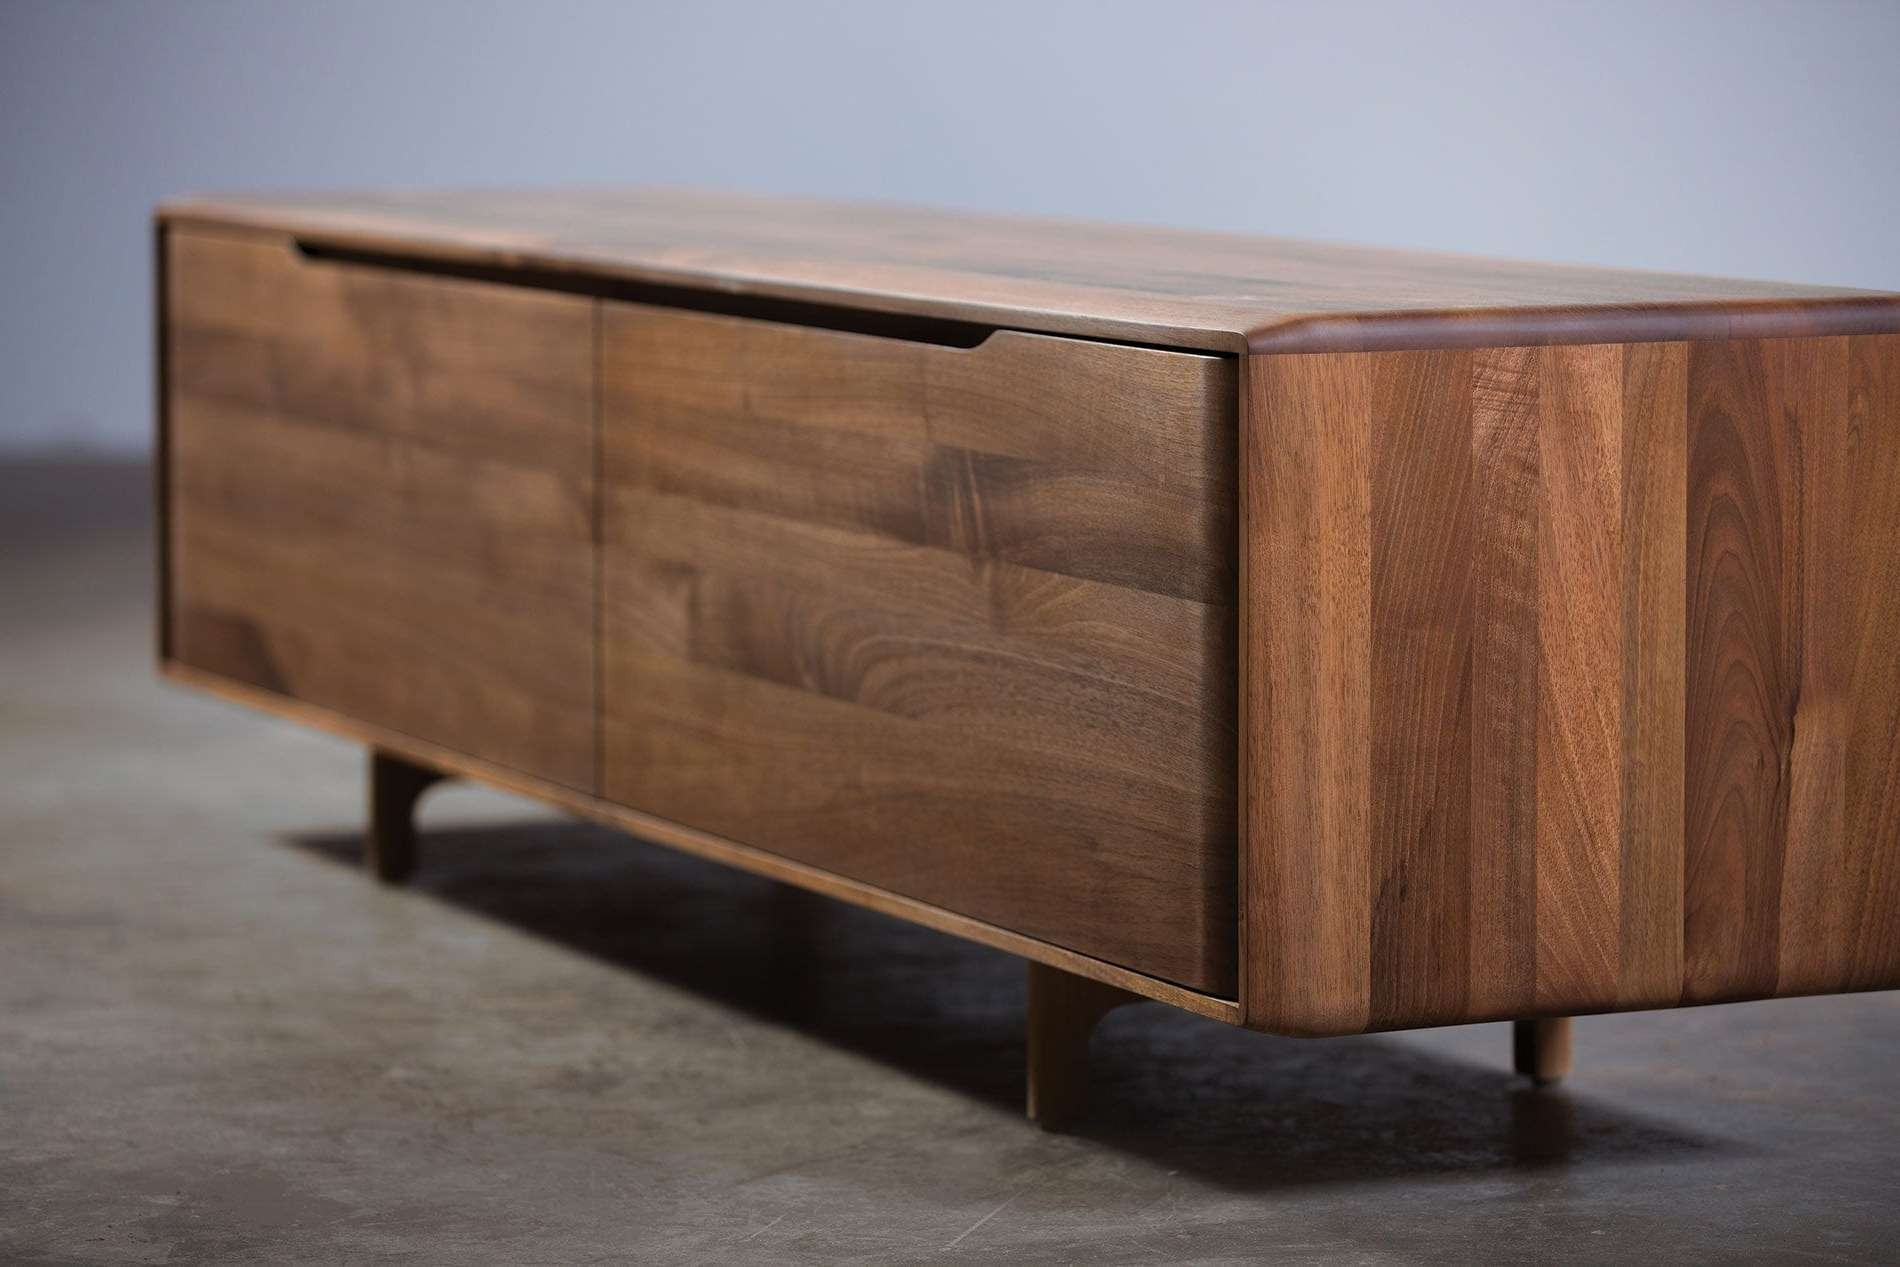 Contemporary Sideboard / Oak / Walnut / Solid Wood – Invito Regarding Real Wood Sideboards (View 4 of 20)